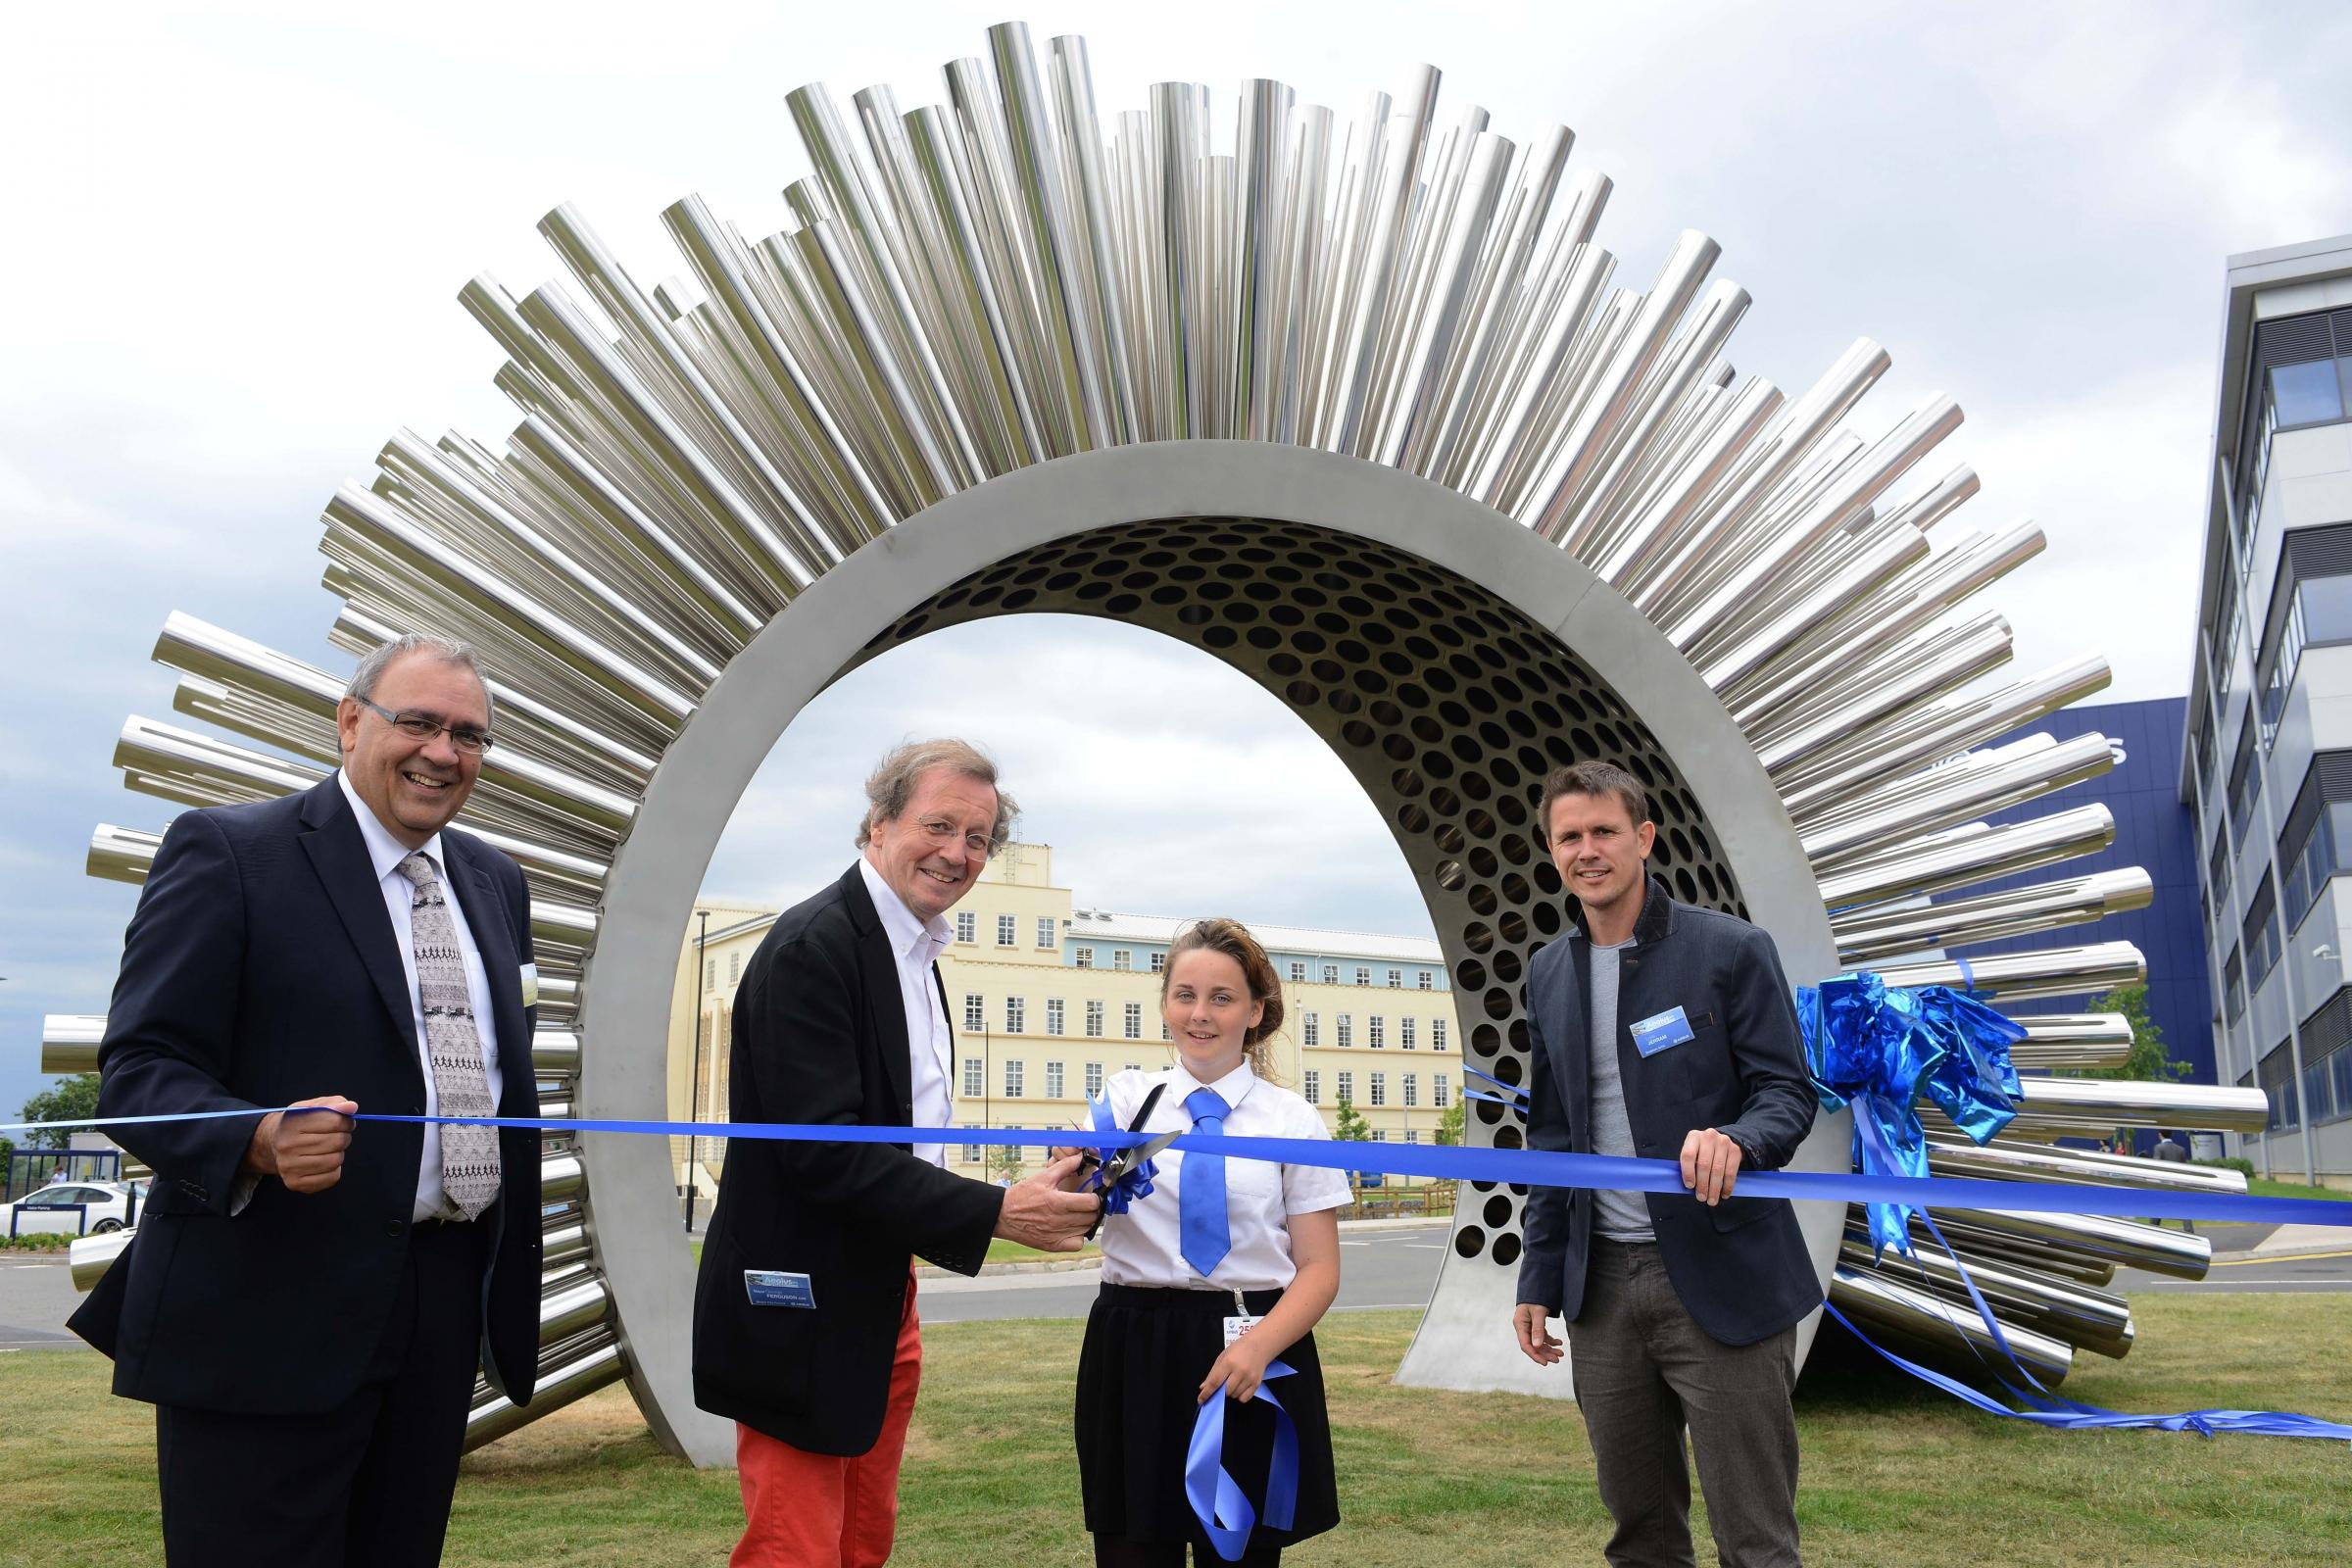 Bristol's elected mayor, George Ferguson cuts a ribbon in front of the Aeolus sculpture, helped by Lauren Edwards 14, from the Orchard School, Monks Park. Also pictured are Behrooz Barzegar, left, head of flight physics integration, and sculpture crea